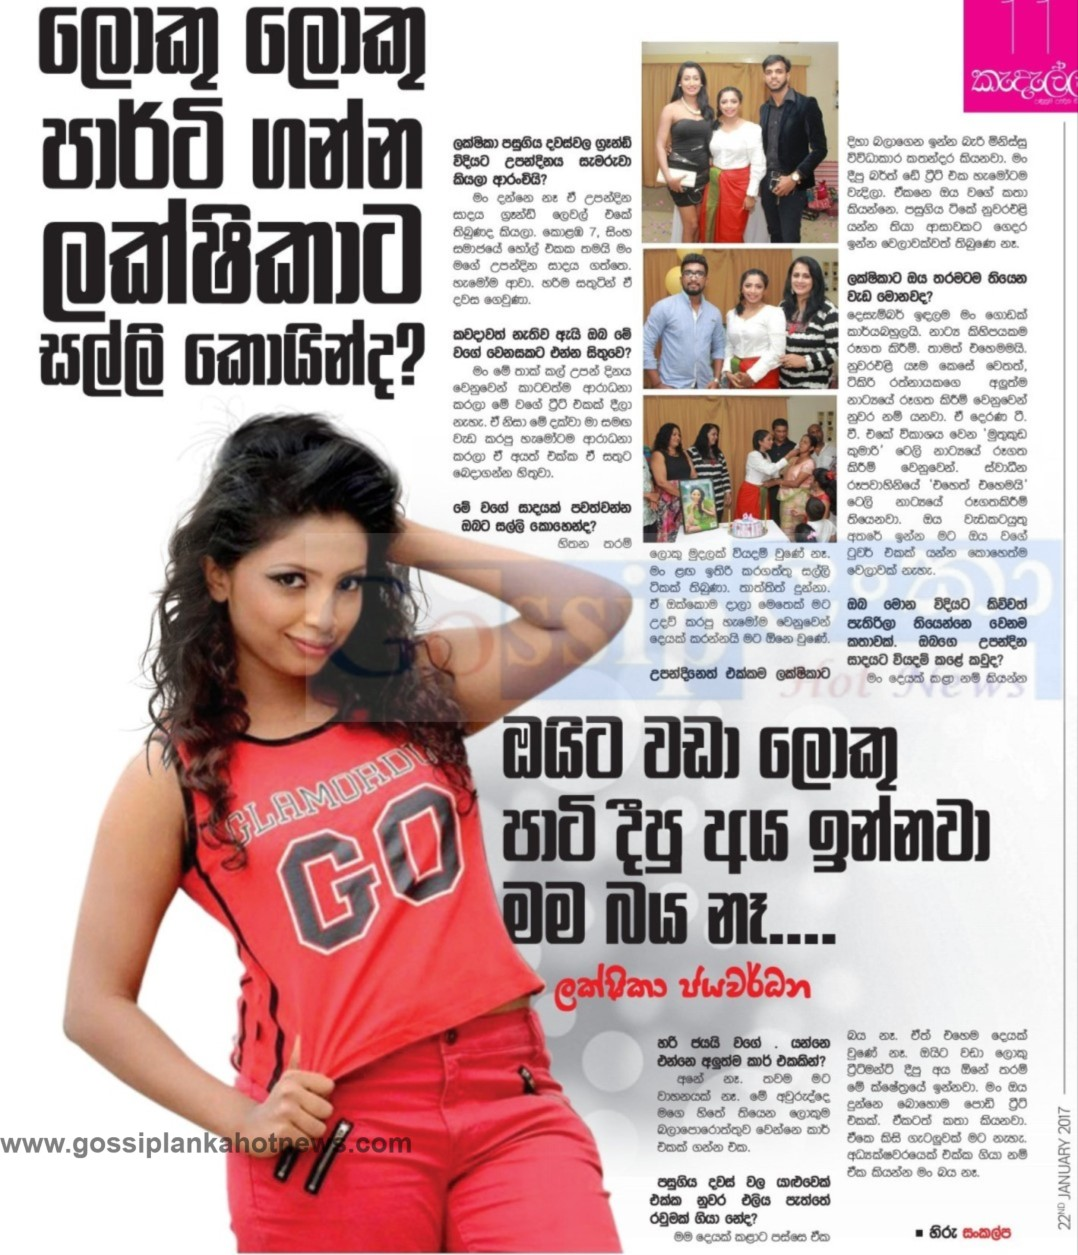 Gossip Lanka Gossip Chat With Lakshika Jayawardhana